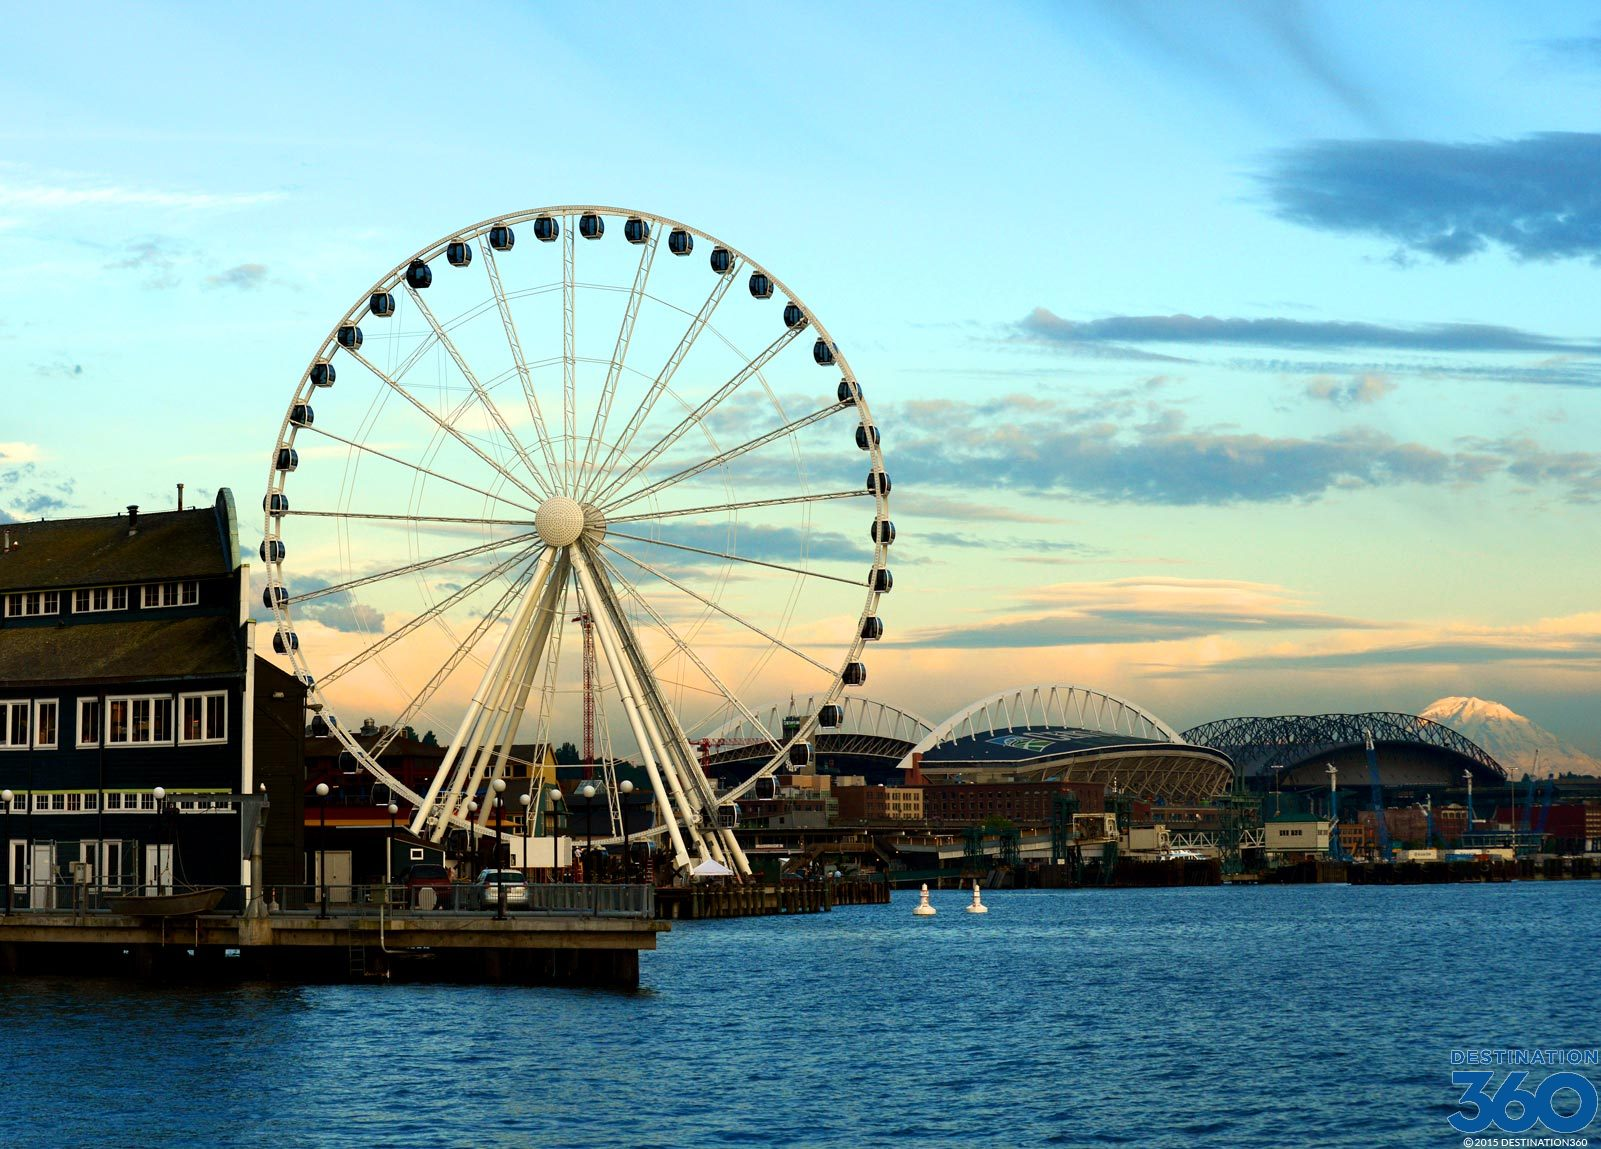 Seattle Great Ferris Wheel Pier 57 Ferris Wheel